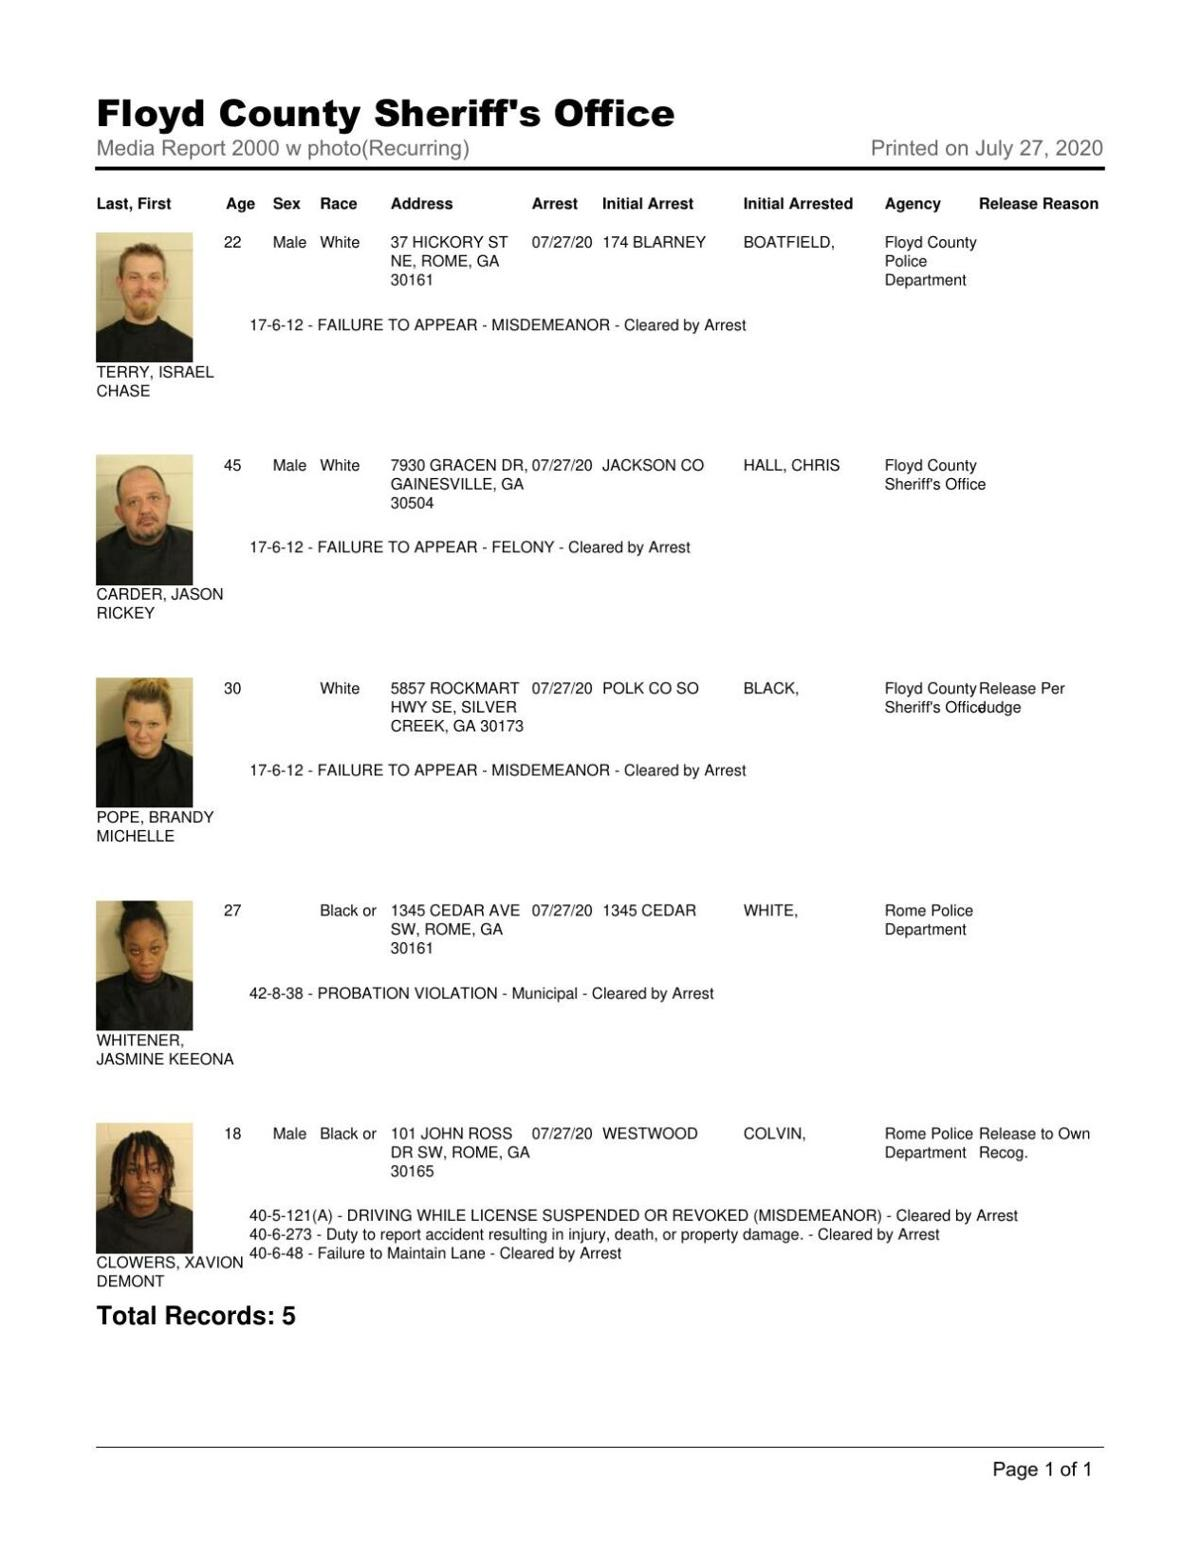 Floyd County Jail report for 8 p.m. Monday, July 27